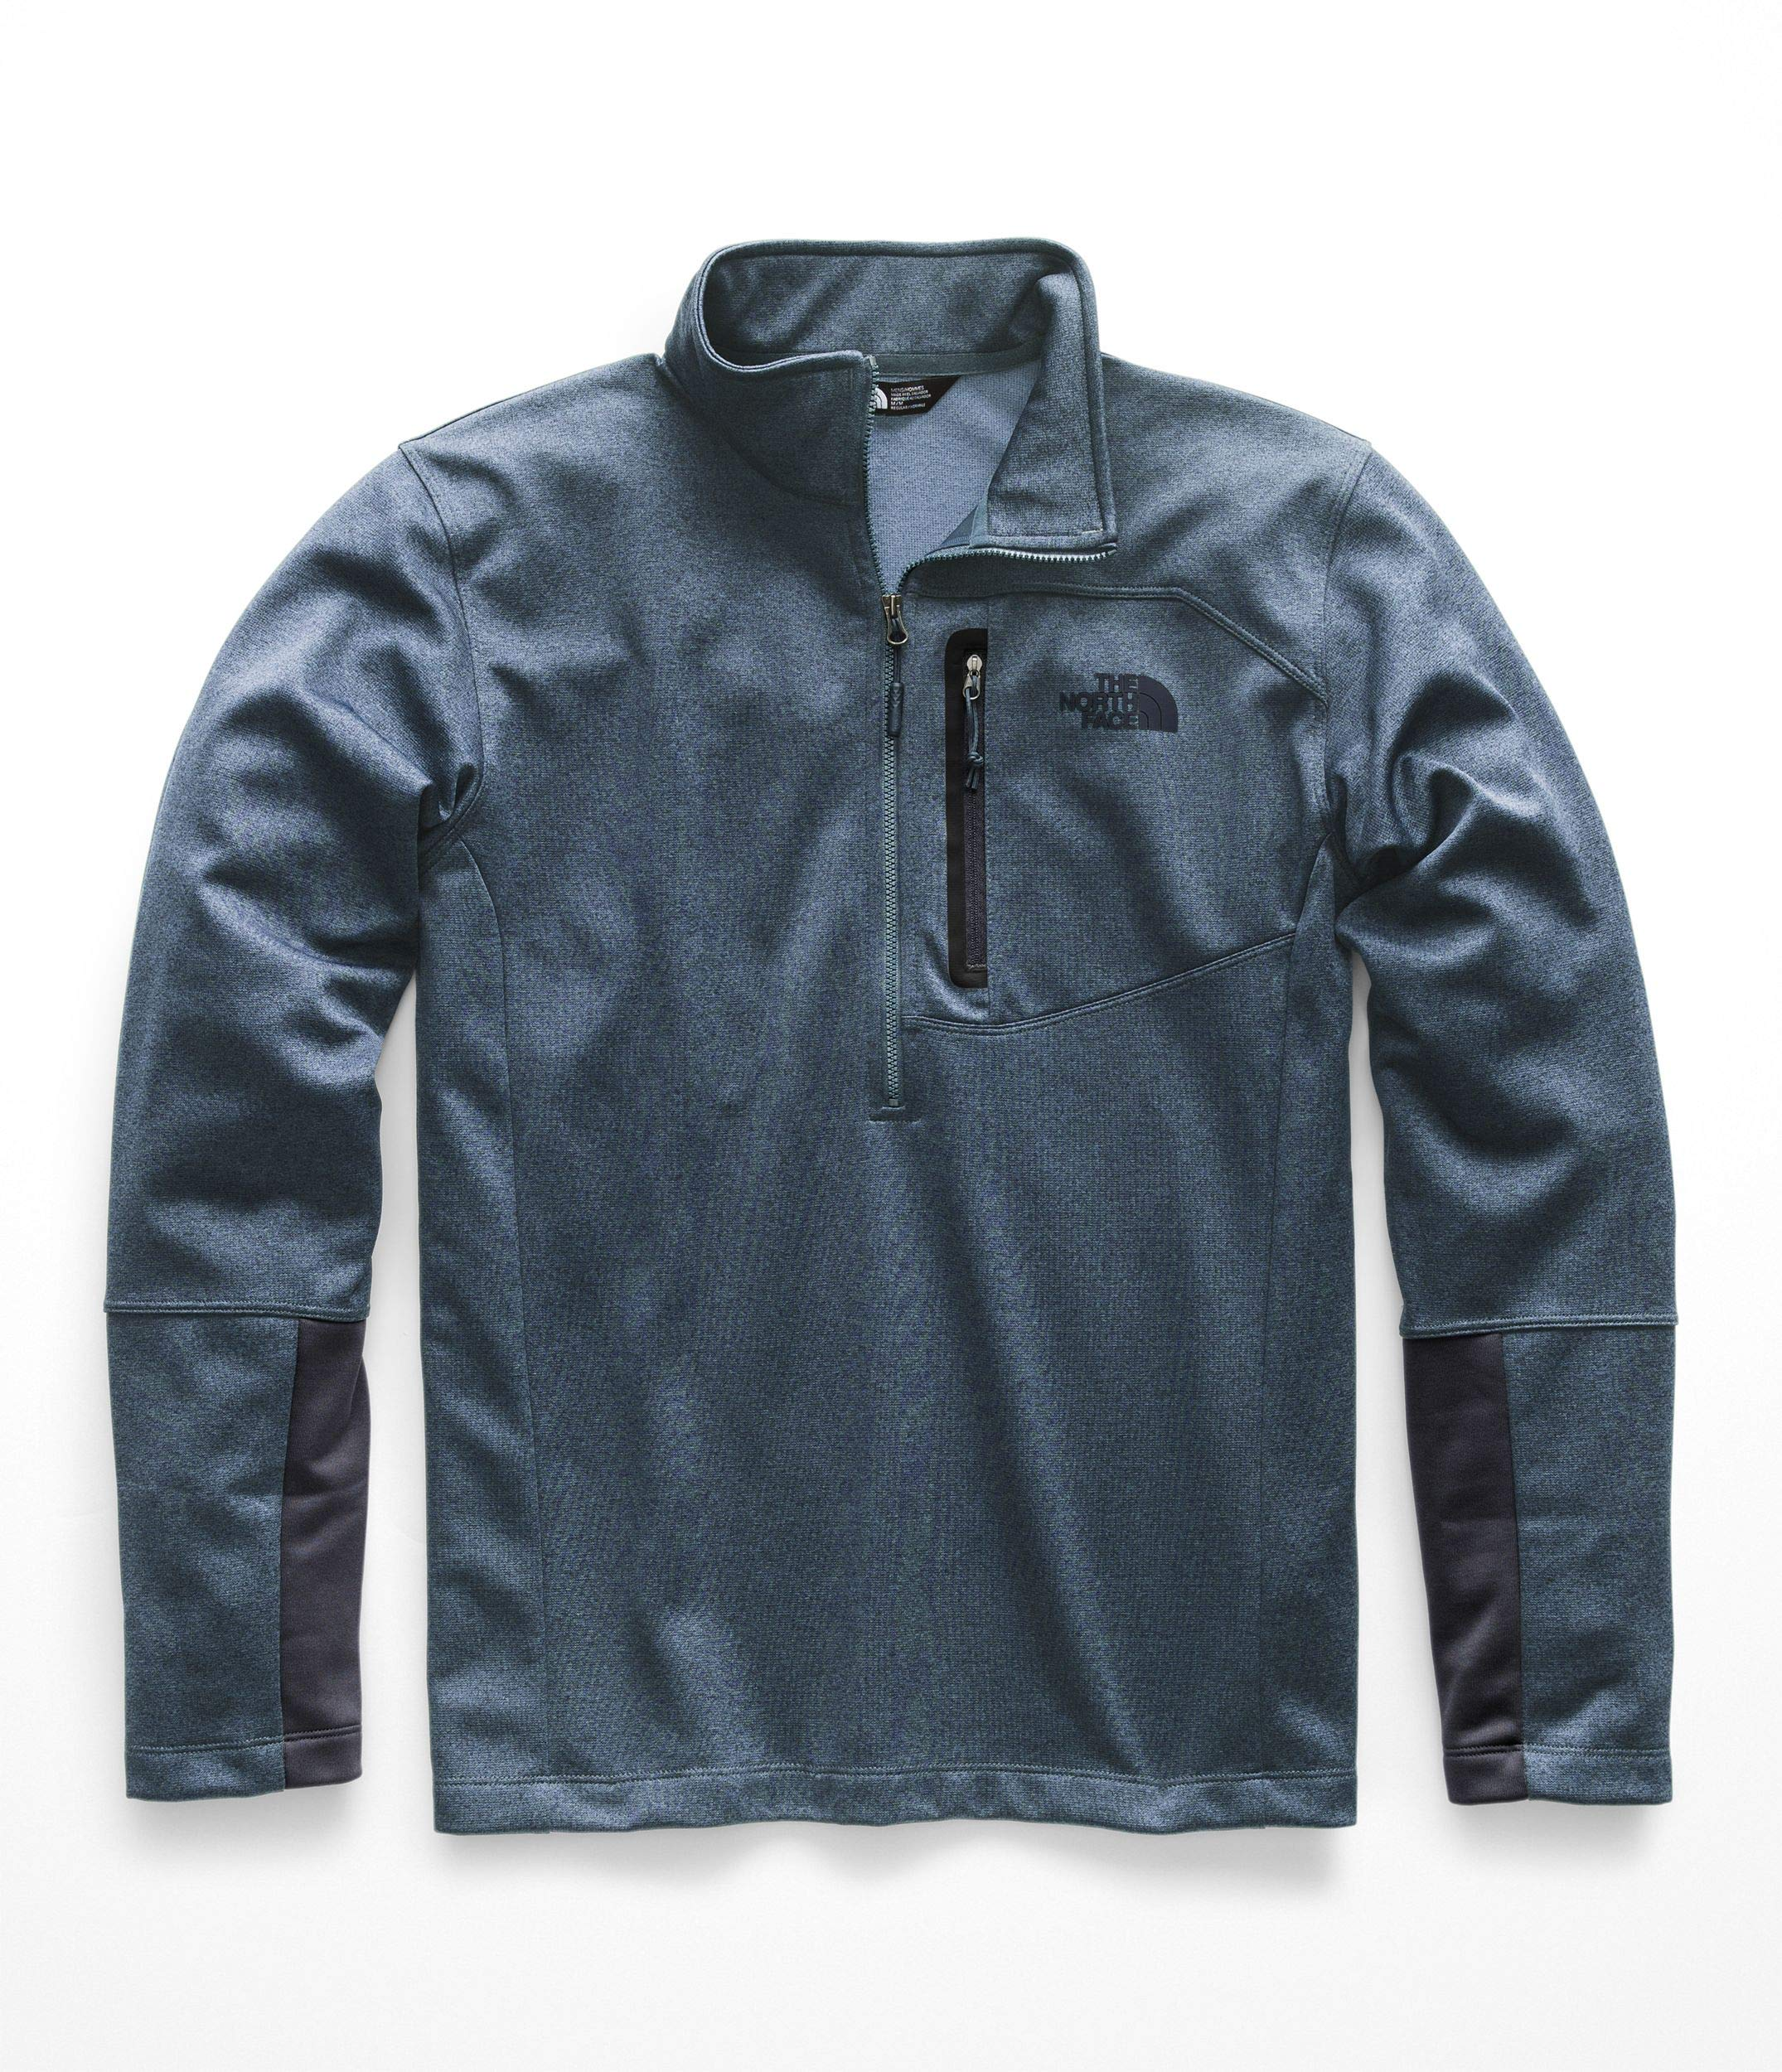 The North Face Men's Canyonlands Half Zip - Shady Blue Heather - M